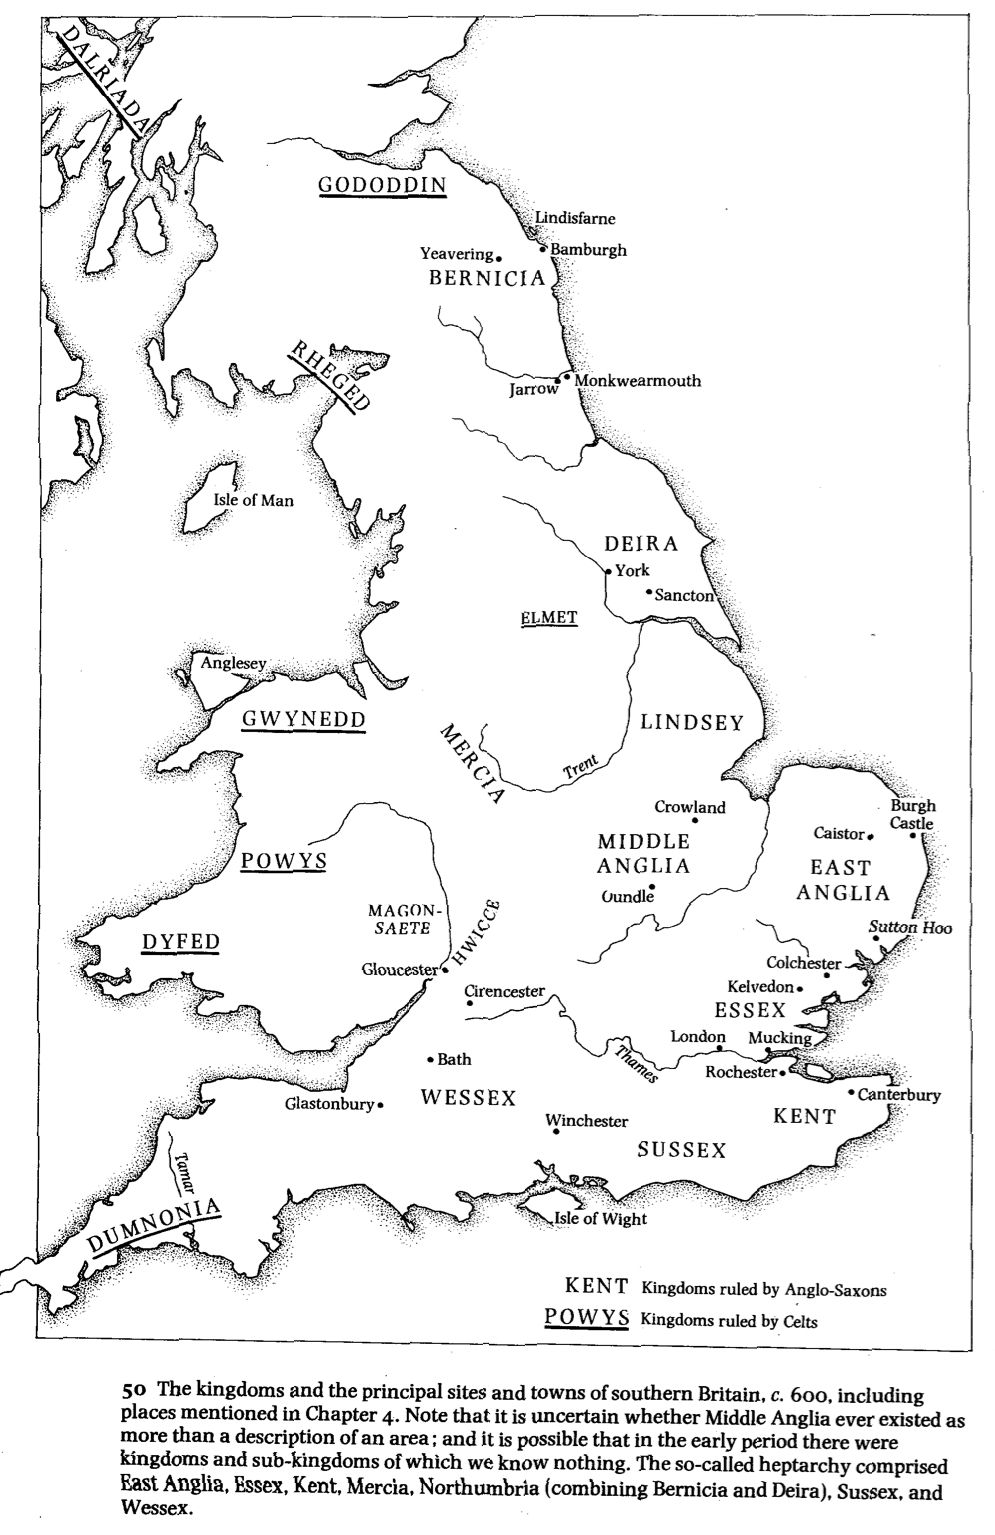 viking invasion of england essay In 878: vikings – invasions of england, players control the invading vikings or the english nobles who are trying to withstand the invasion viking players either .